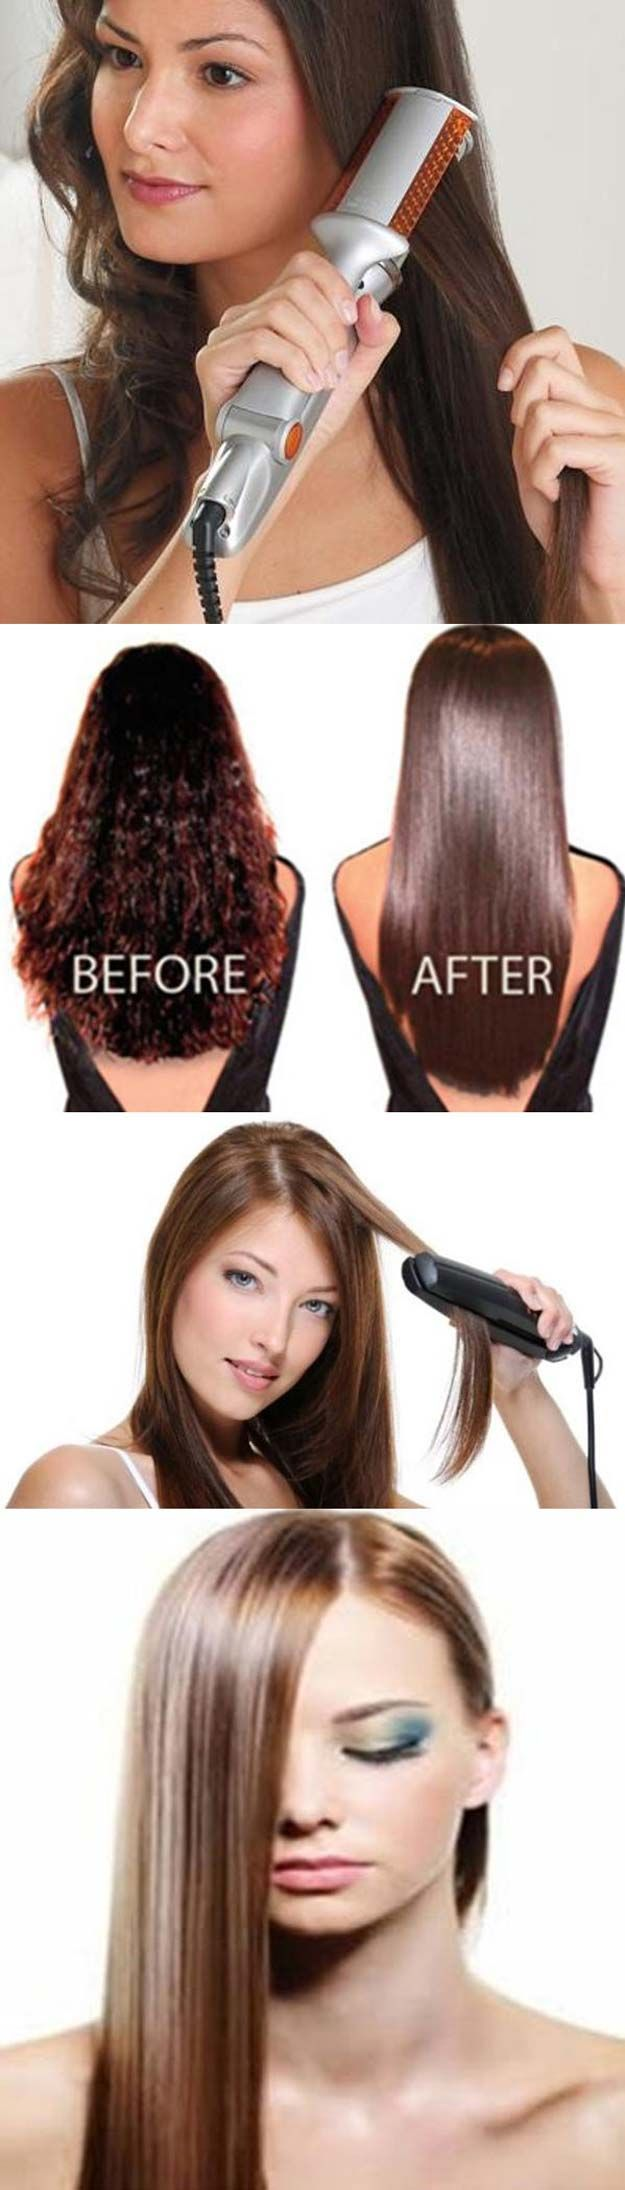 Hair Straightening Tutorials -How to Straighten Hair - A Tutorial -Looking For T...